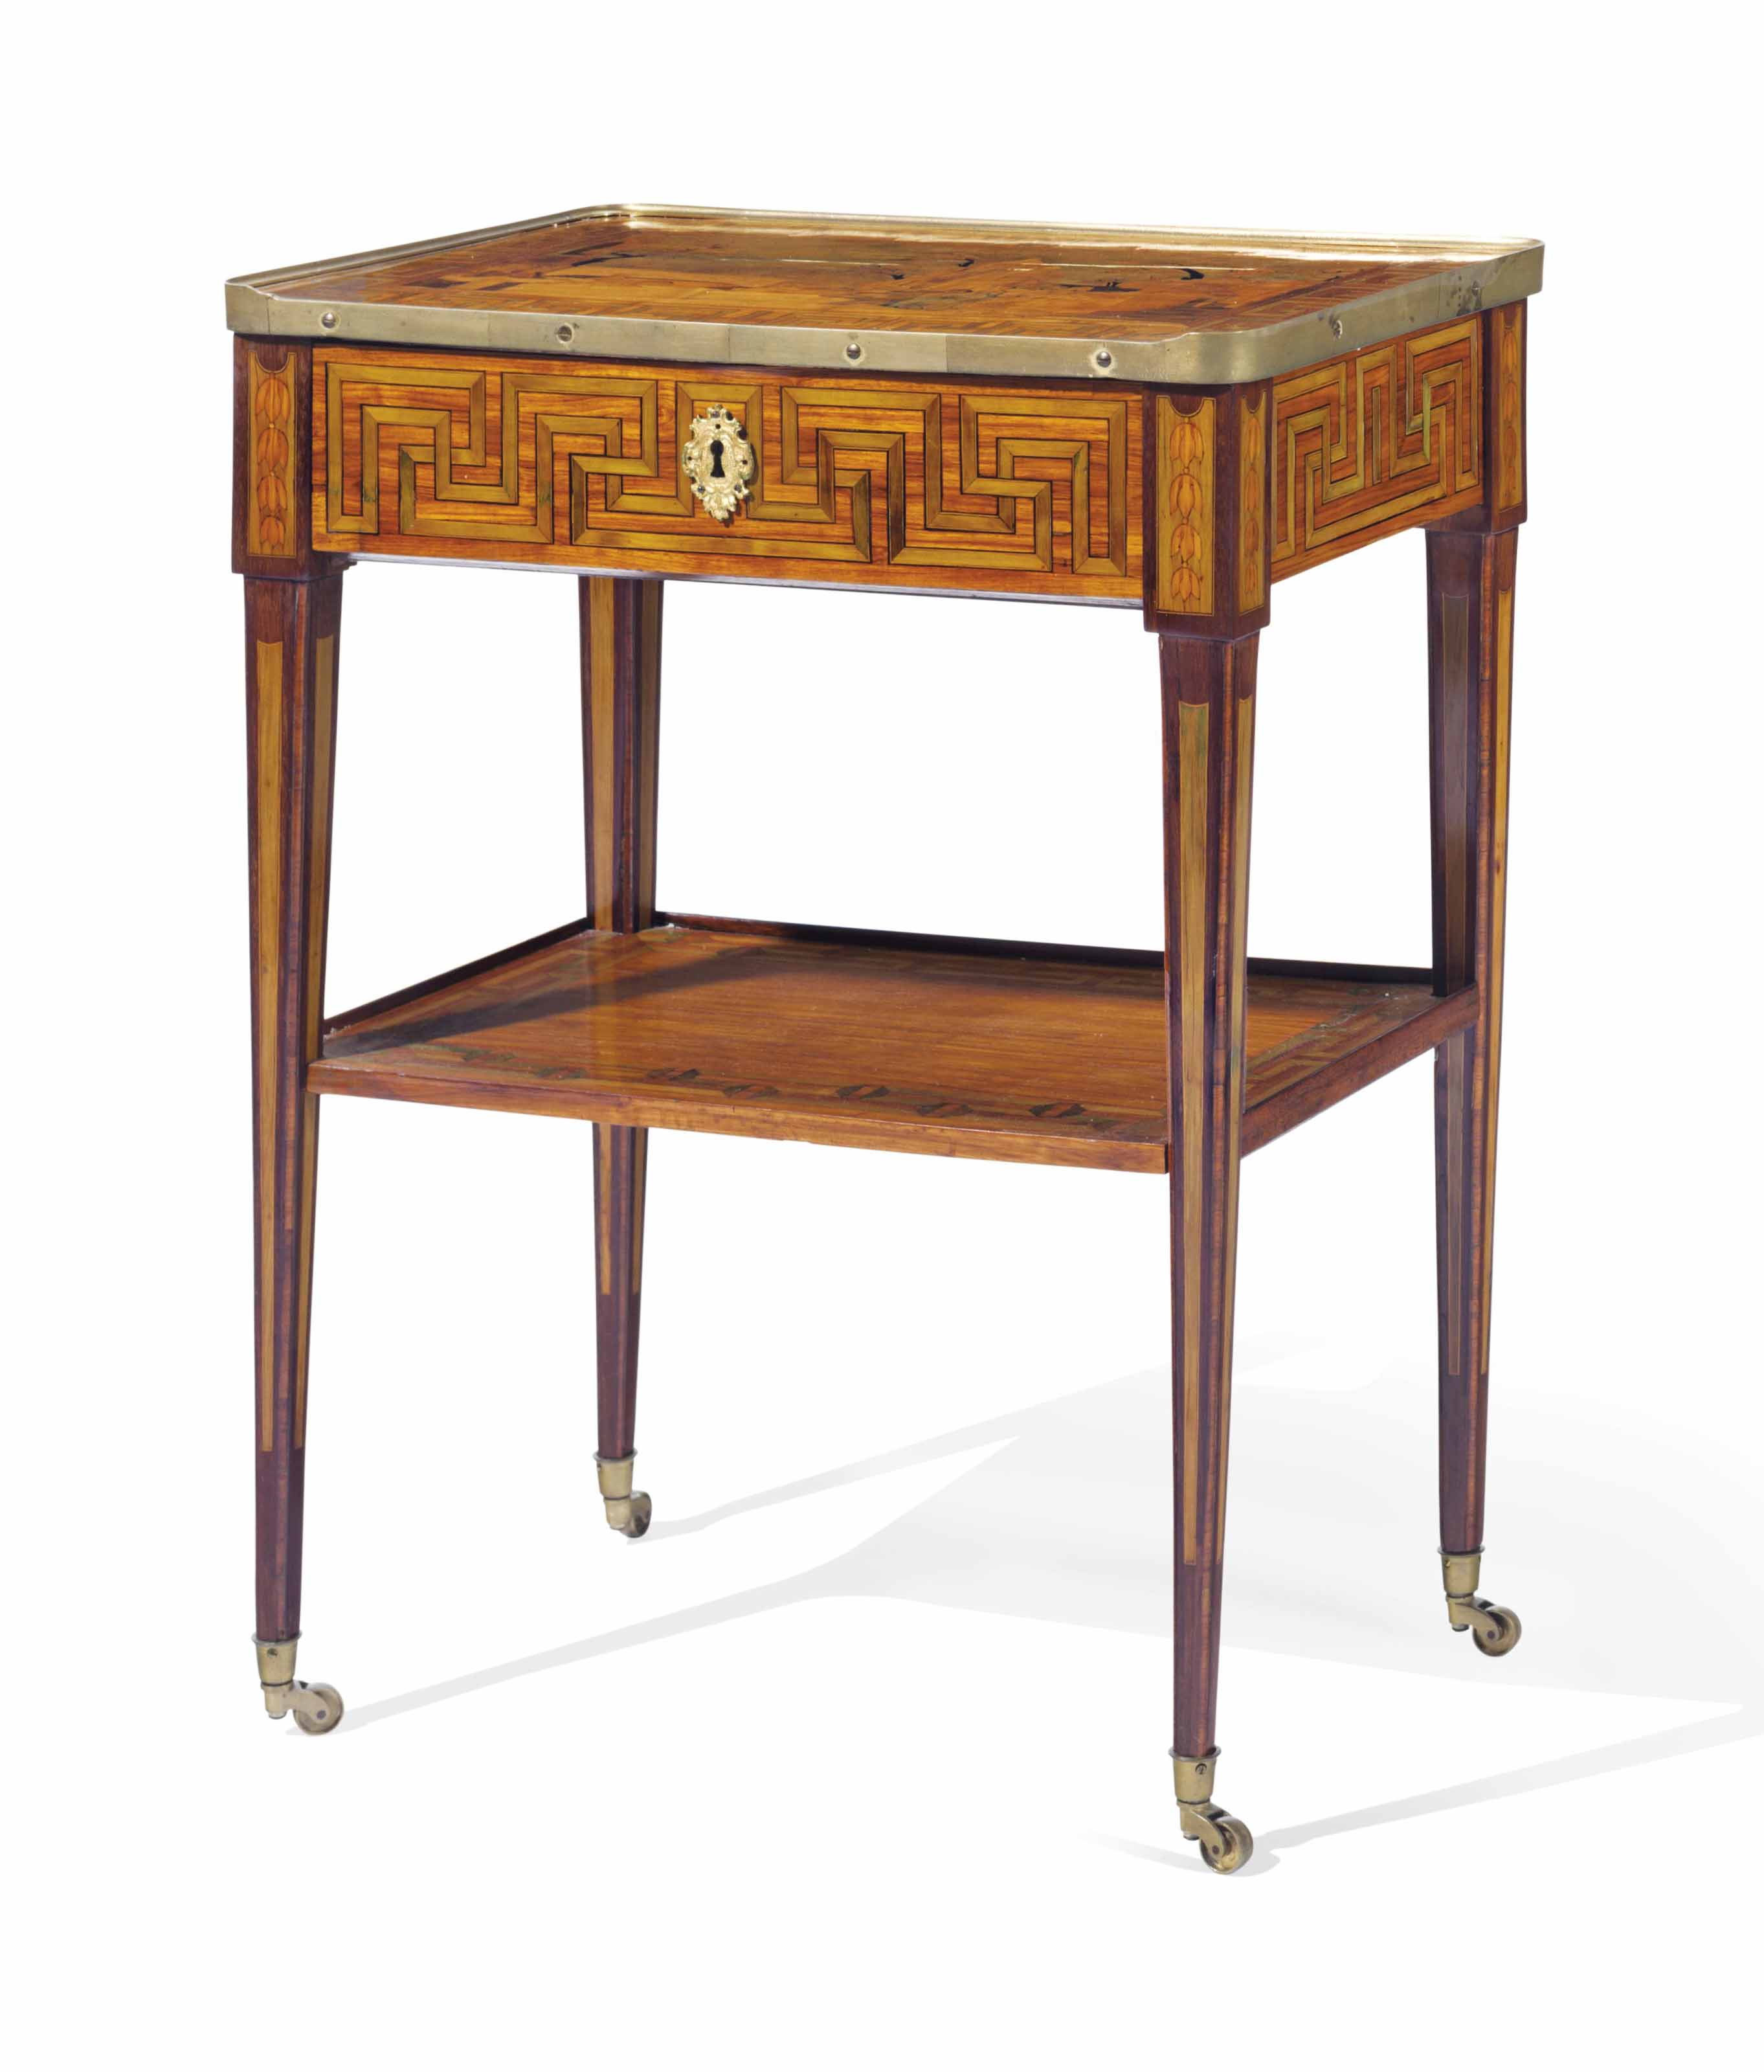 A LOUIS XVI ORMOLU-MOUNTED AMARANTH, TULIPWOOD, MARQUETRY AND PARQUETRY WRITING TABLE